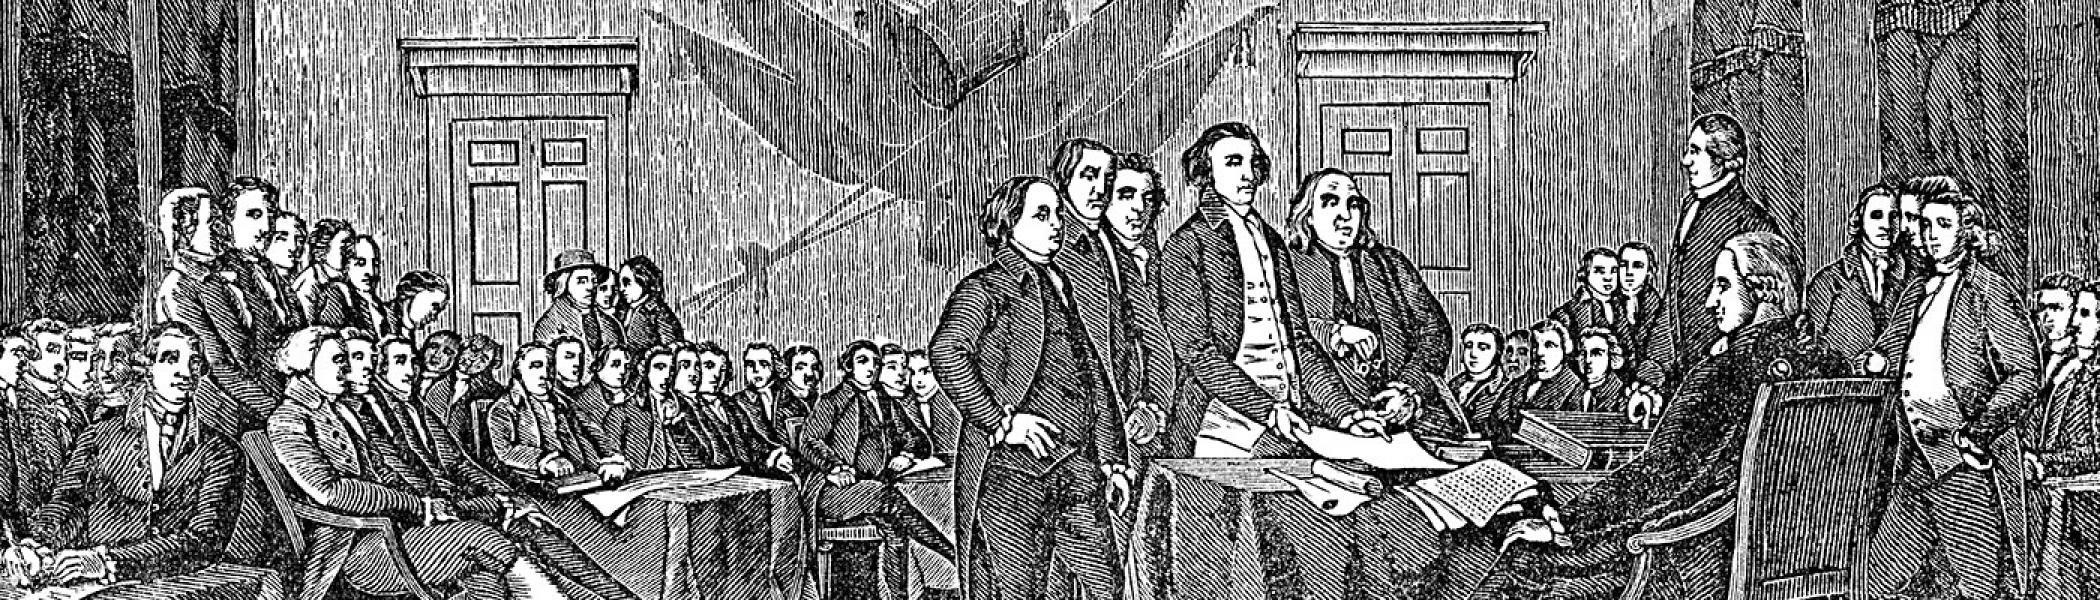 A black and white sketch of some officeres in uniform sitting in a large boardroom style room in the 1700's